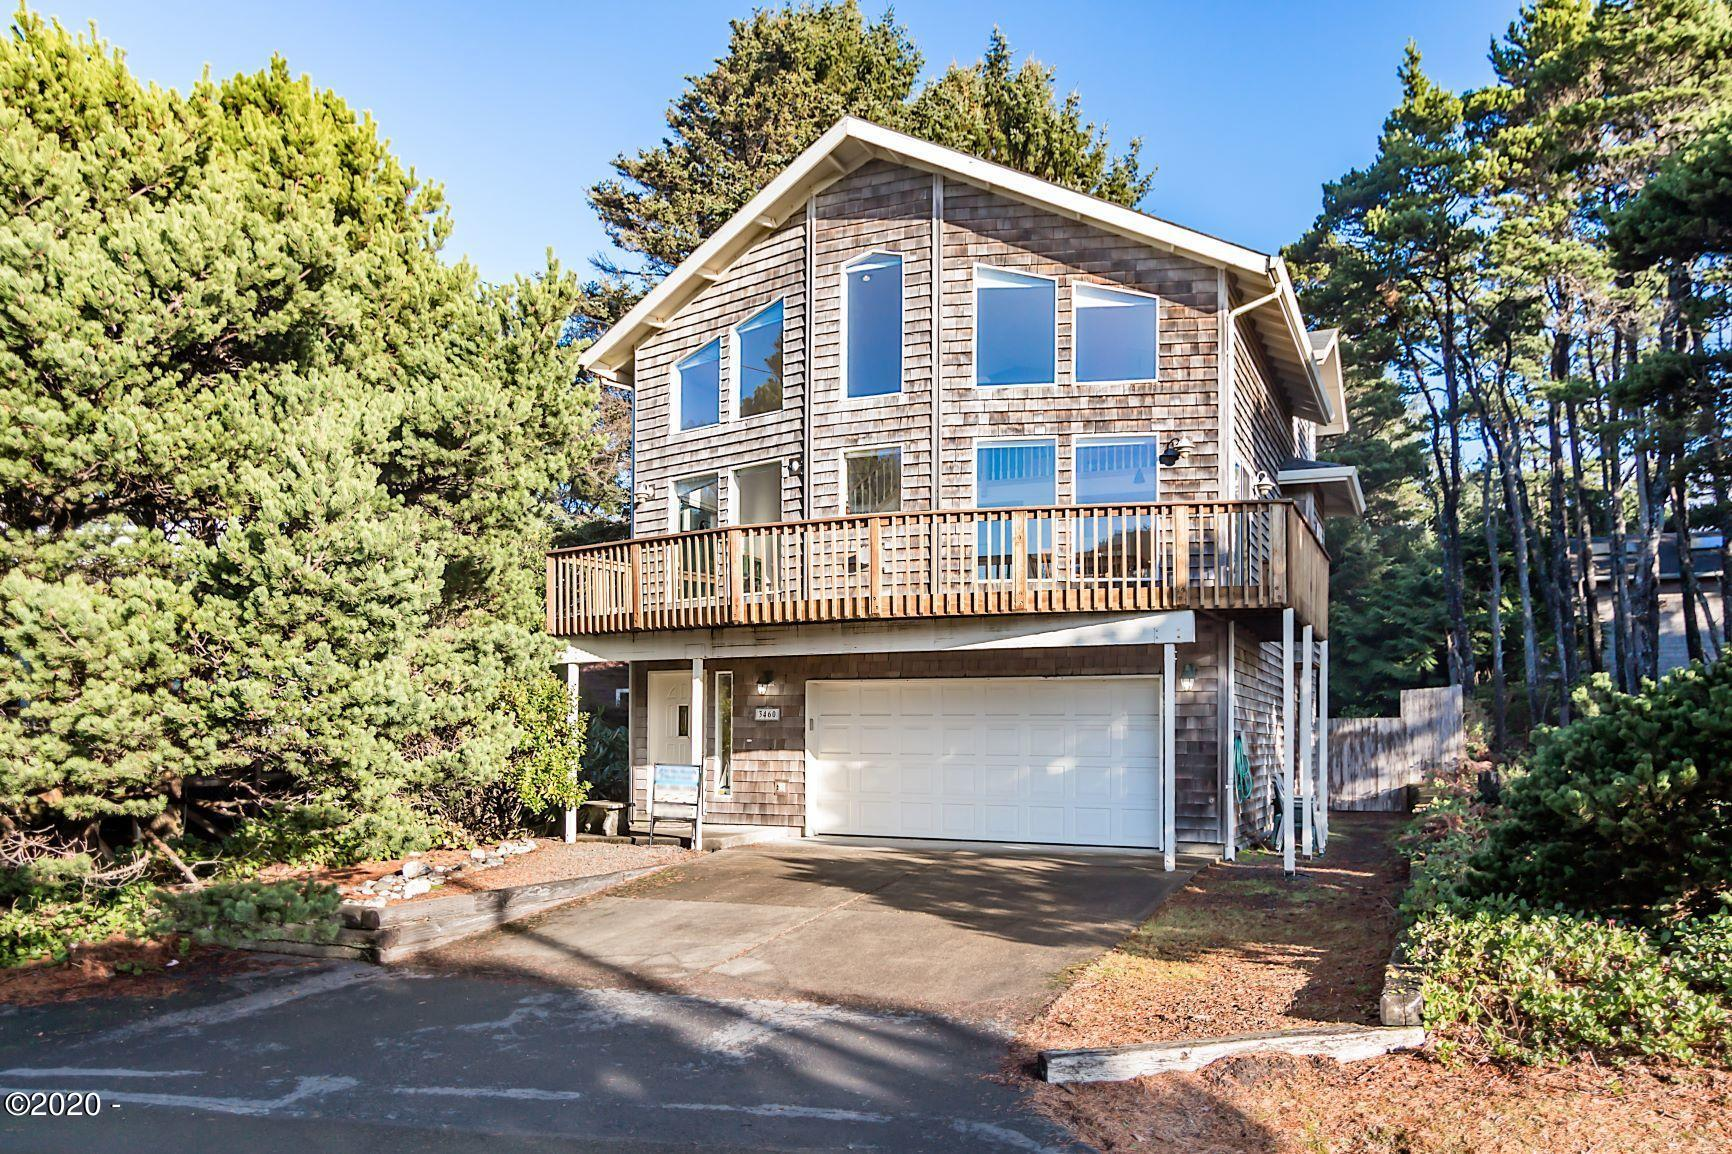 3460 Lincoln Ave, Depoe Bay, OR 97341 - Front view